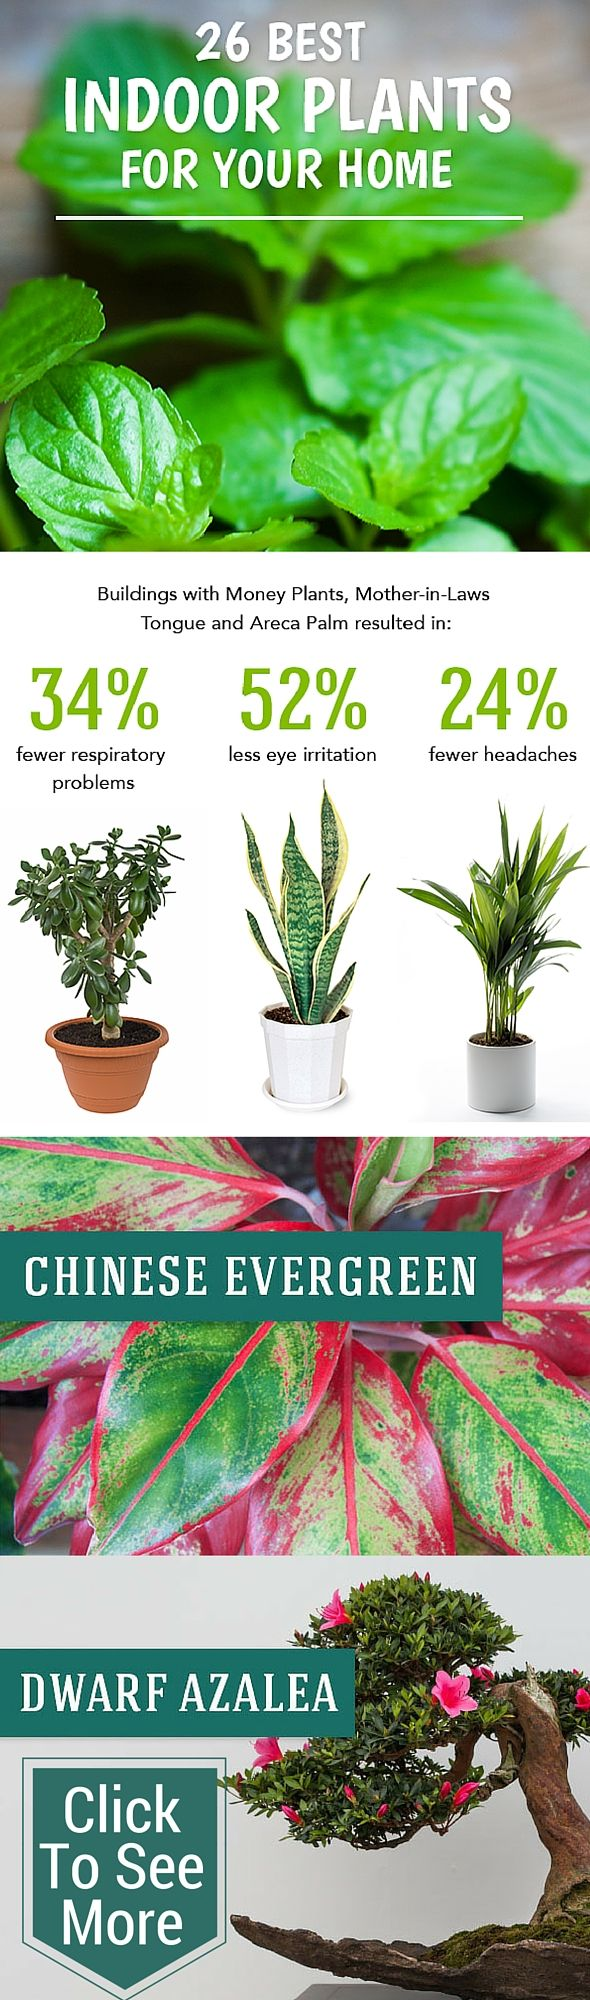 Marvelous Best Indoor Plants To Help Purify Your Air Pinteres Largest Home Design Picture Inspirations Pitcheantrous